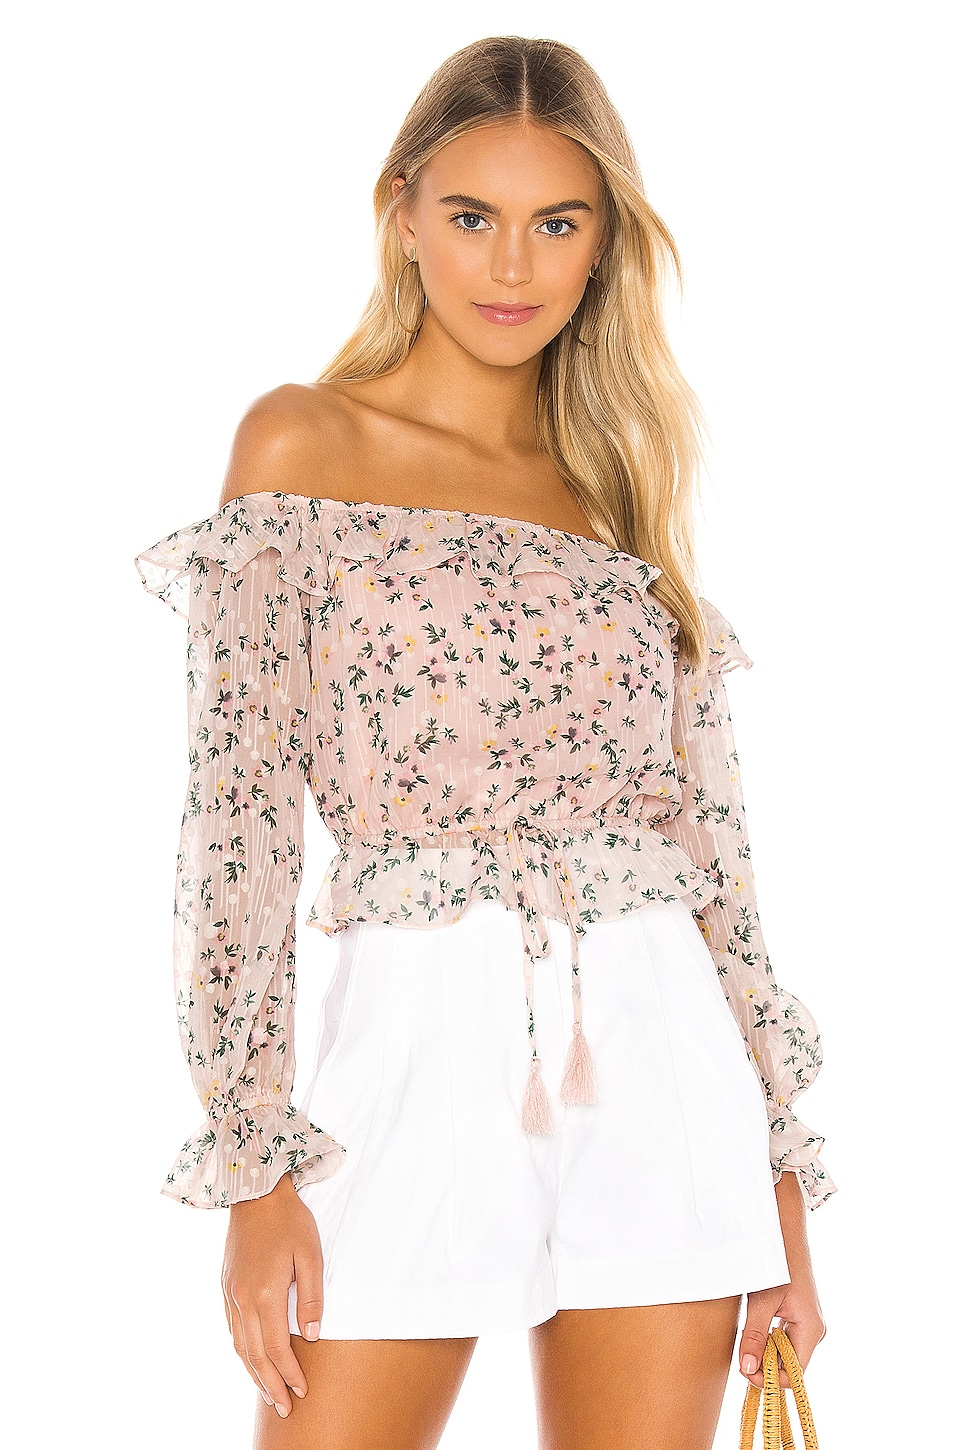 Tularosa Grace Top in Pale Pink Floral